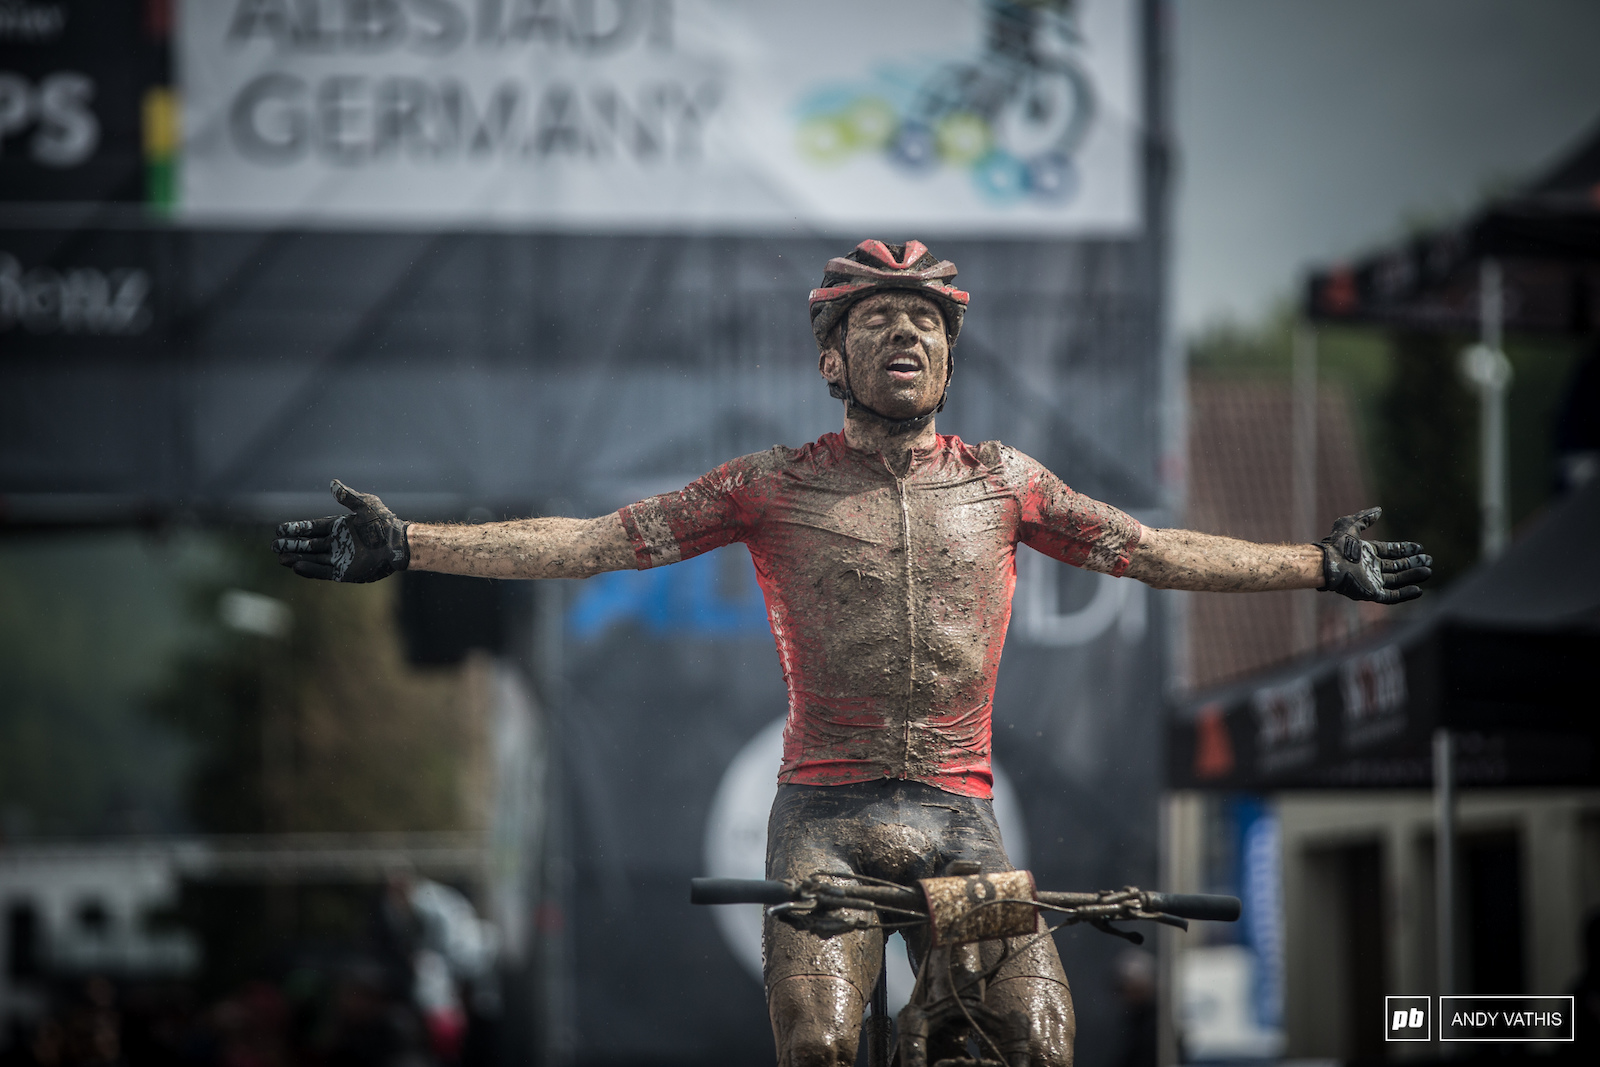 A well earned victory for Mathias Flueckiger.